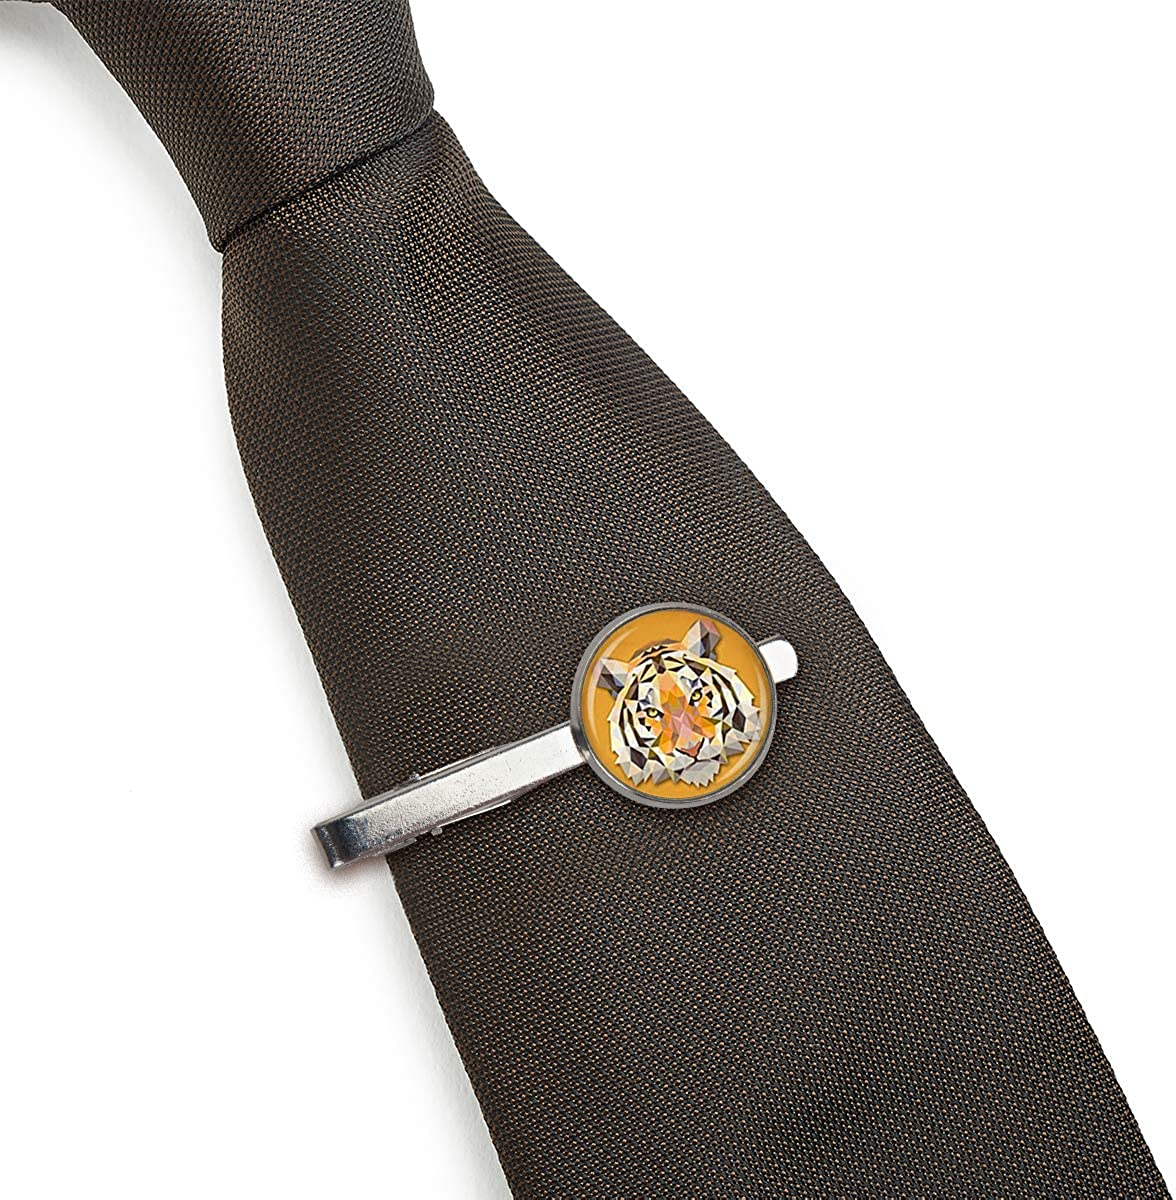 LooPoP Men Tie Clip Tiger Animal Art Tiger Image Stainless Tie Pins for Business Wedding Shirts Tie Clips Include Gift Box